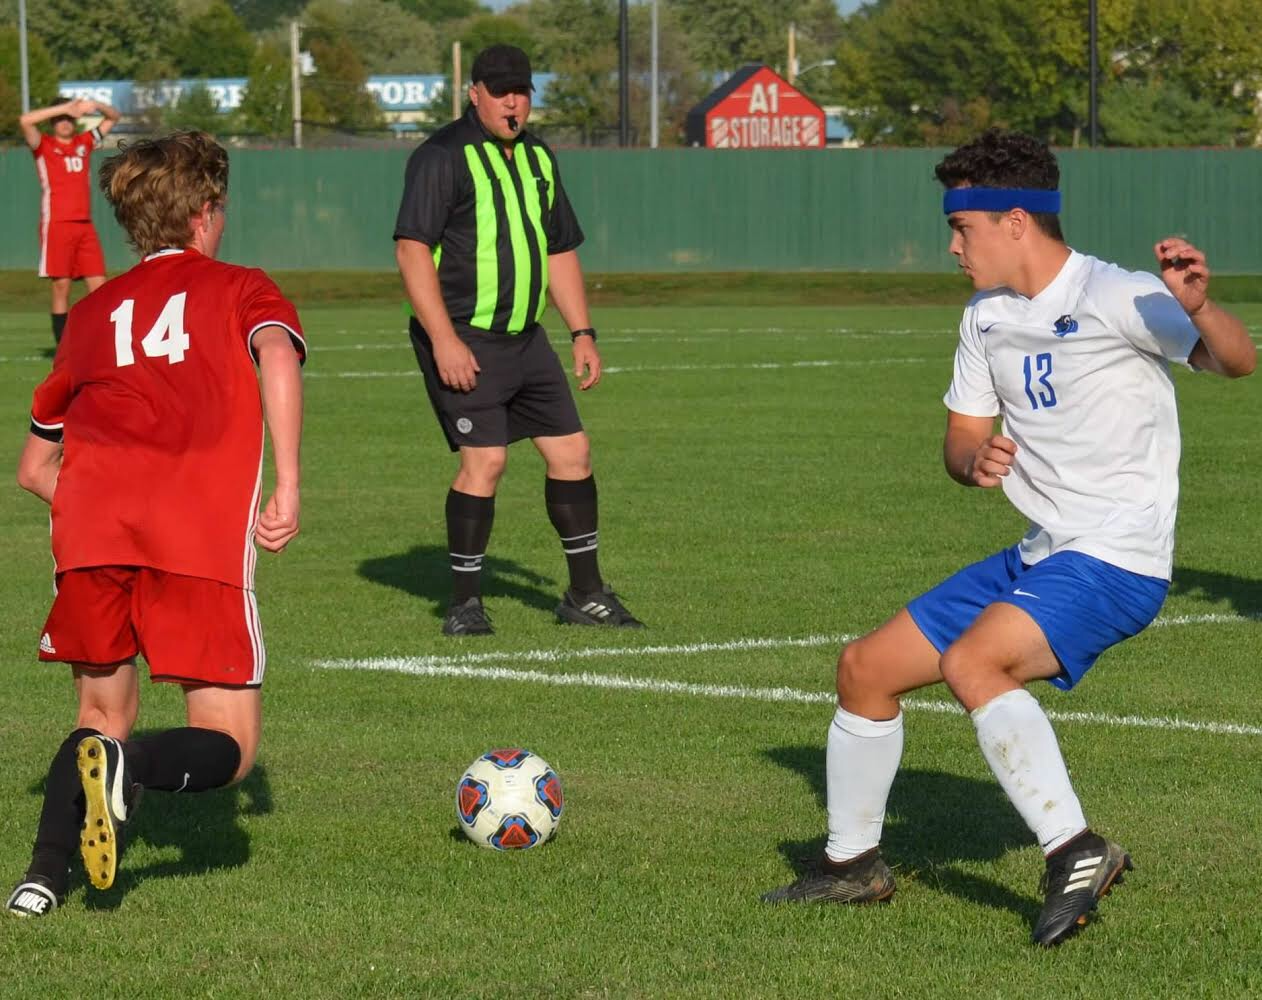 Cole Hartman, defending for the Jays against a New Covenant player